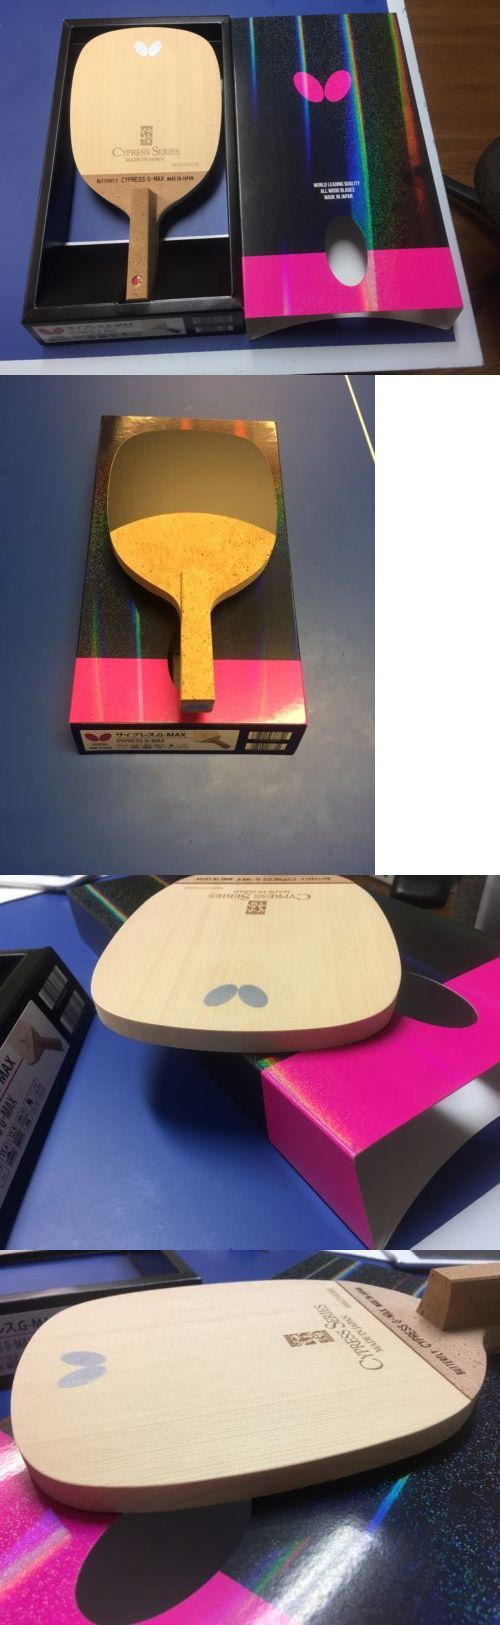 Paddles 36277: Butterfly Table Tennis Cypress G-Max Jpen Blade -> BUY IT NOW ONLY: $319.99 on eBay!